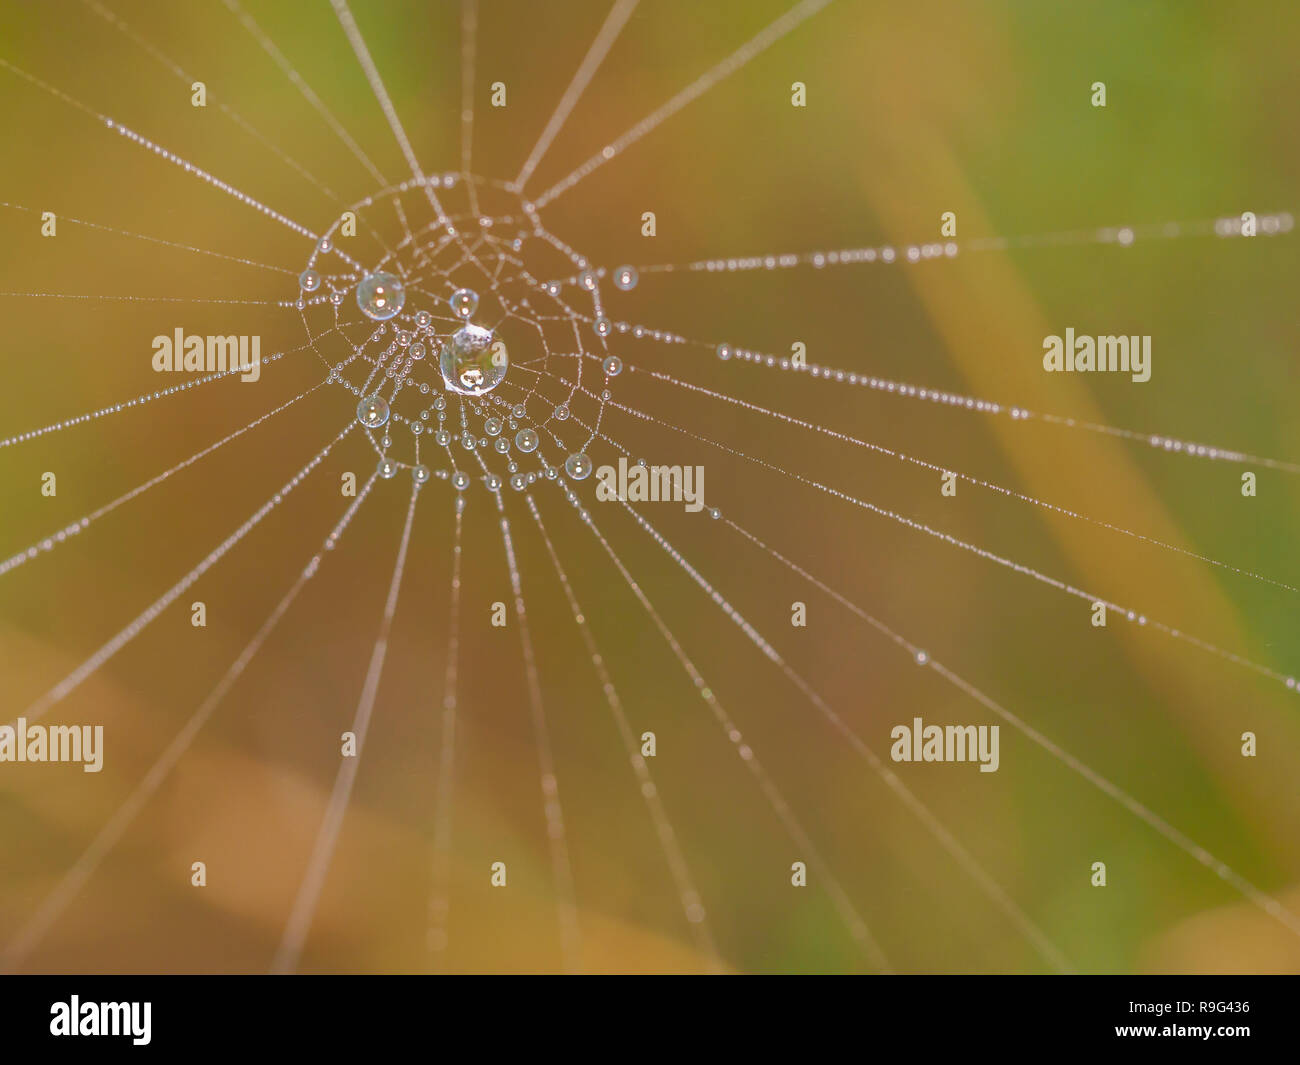 The humidity in its purest state - Stock Image